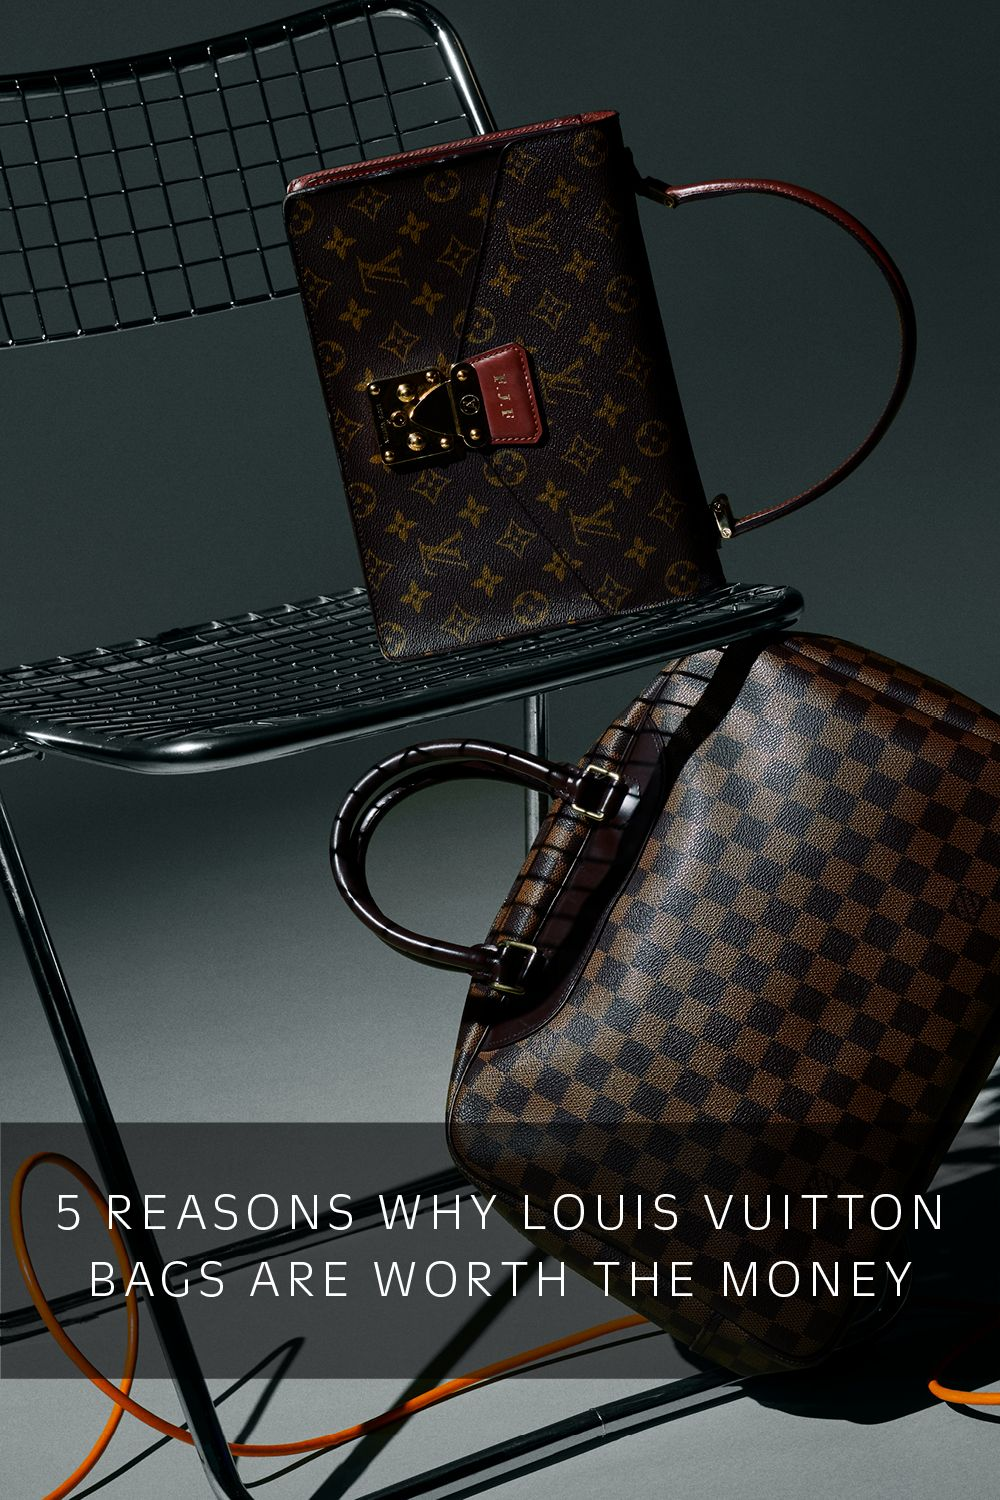 The Quality The Craftsmanship The Resale Value And Other Big Benefits Add Up To The Conclusion That A Louis Vuitton Bag Is An Investment In 2020 Motor Auto S Motoren